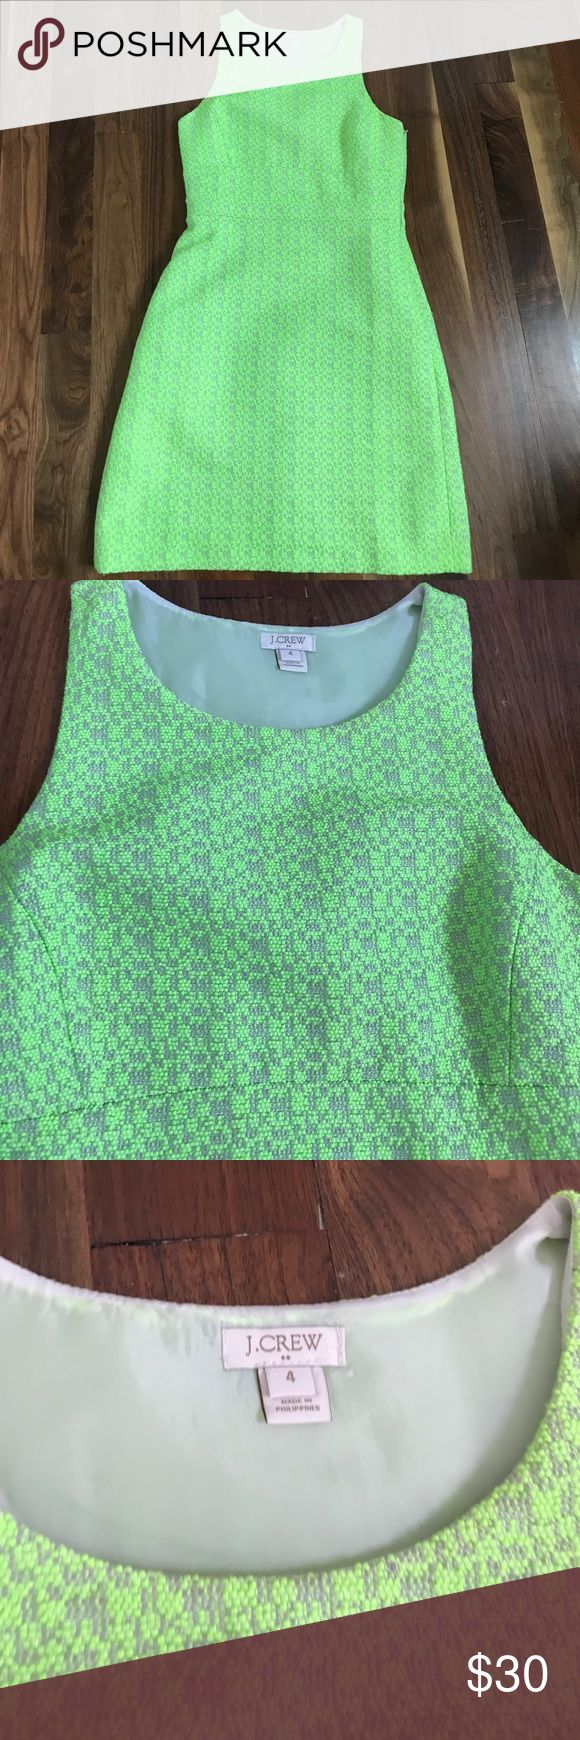 JCREW size 4 lime green dress Amazing JCREW size 4 lime green dress. Fully lined and amazing back detail. Brand new condition. Side zip! J. Crew Dresses